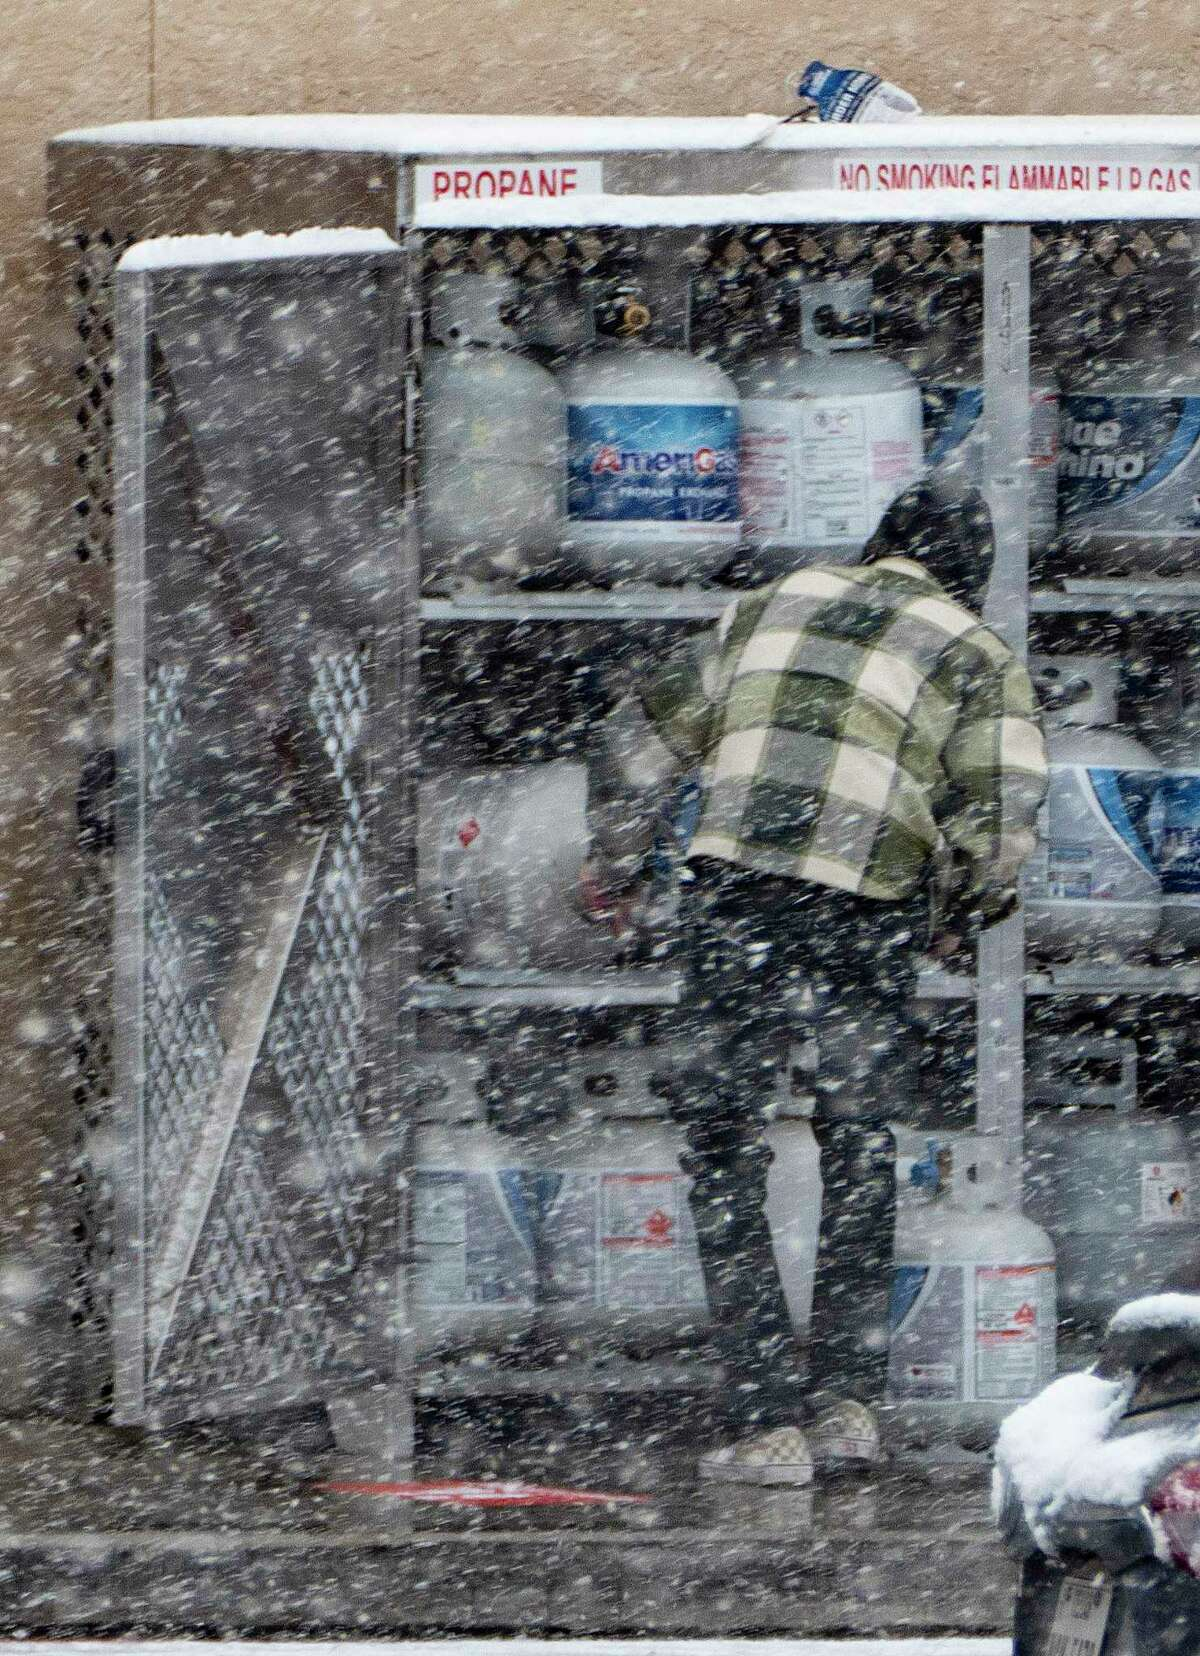 A man buys propane at the H-E-B at West Avenue and Blanco Road as a brisk snow falls on Thursday morning, Feb. 18, 2021.